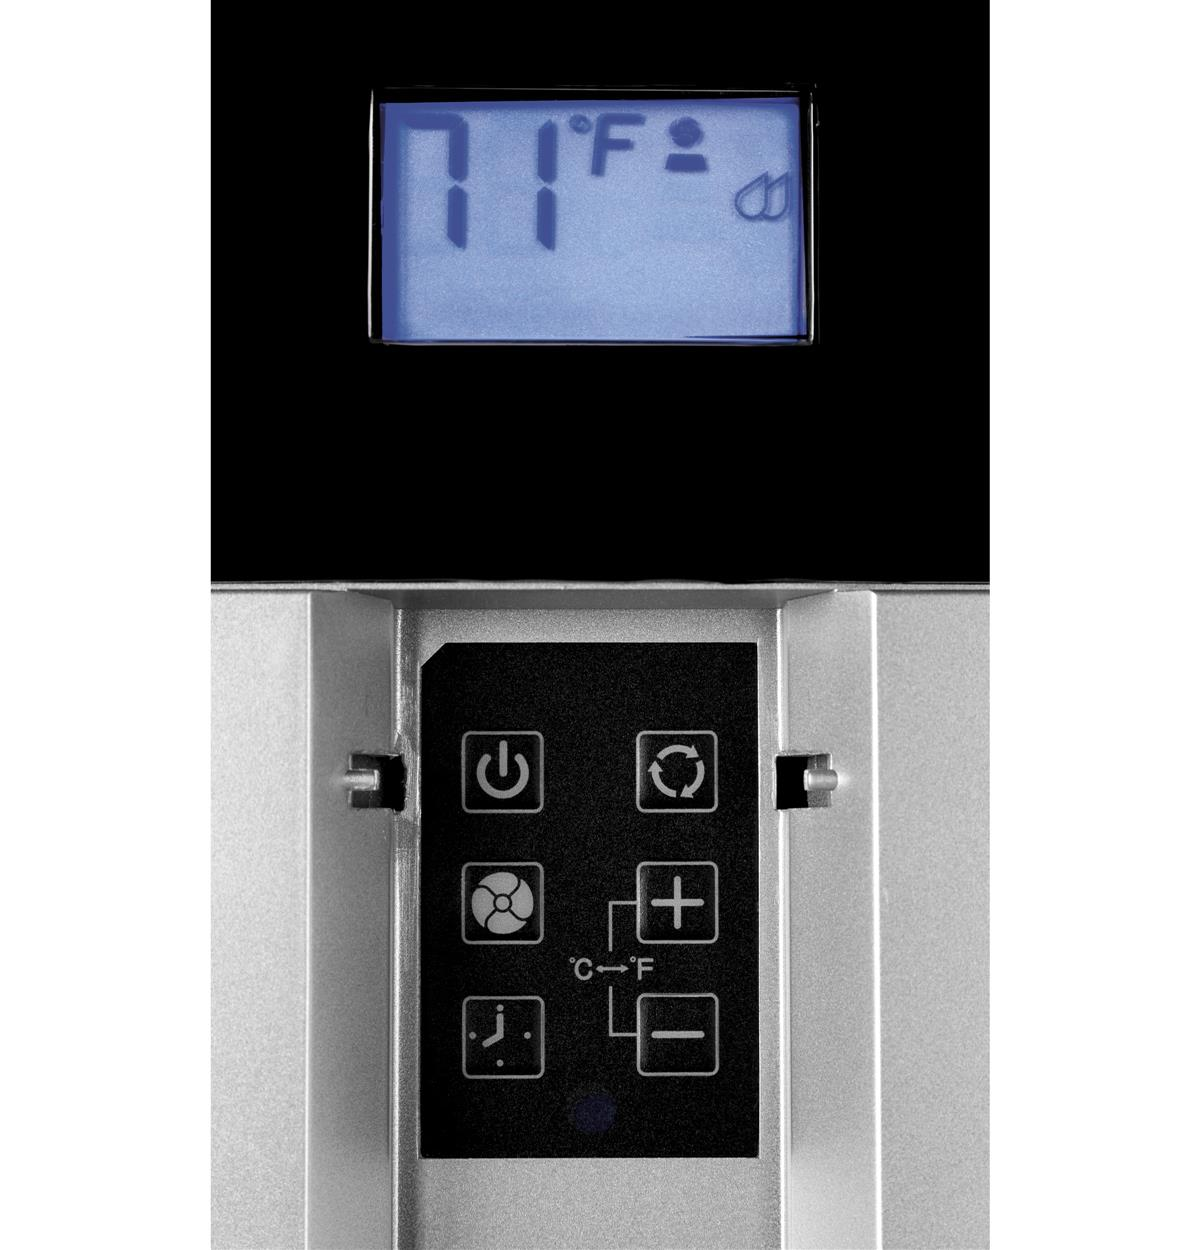 Portable HPND14XCT Control Panel